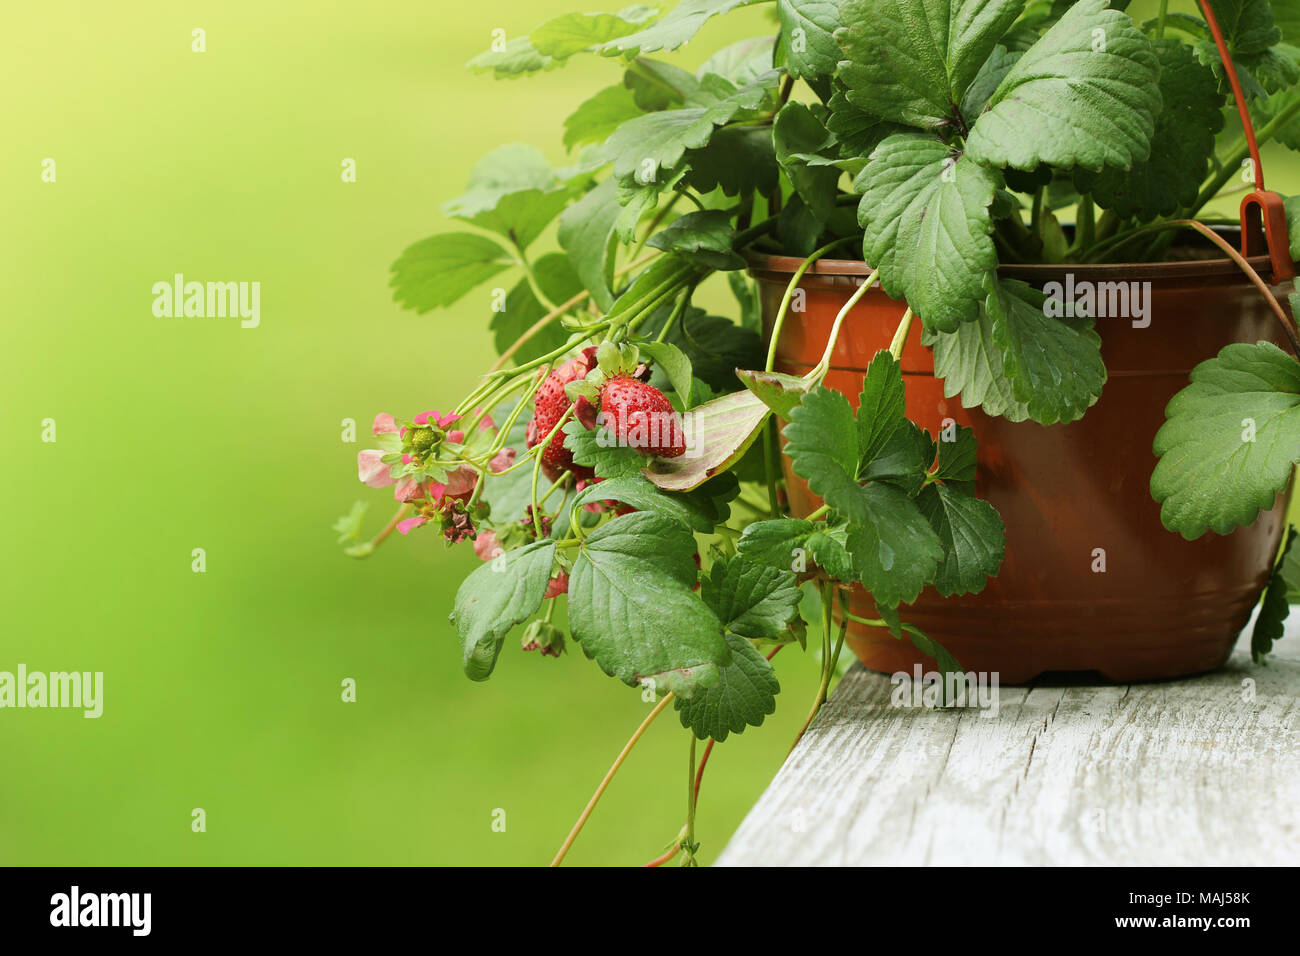 Alpine Strawberry Plant In Pot With Pink Flower On Green Background